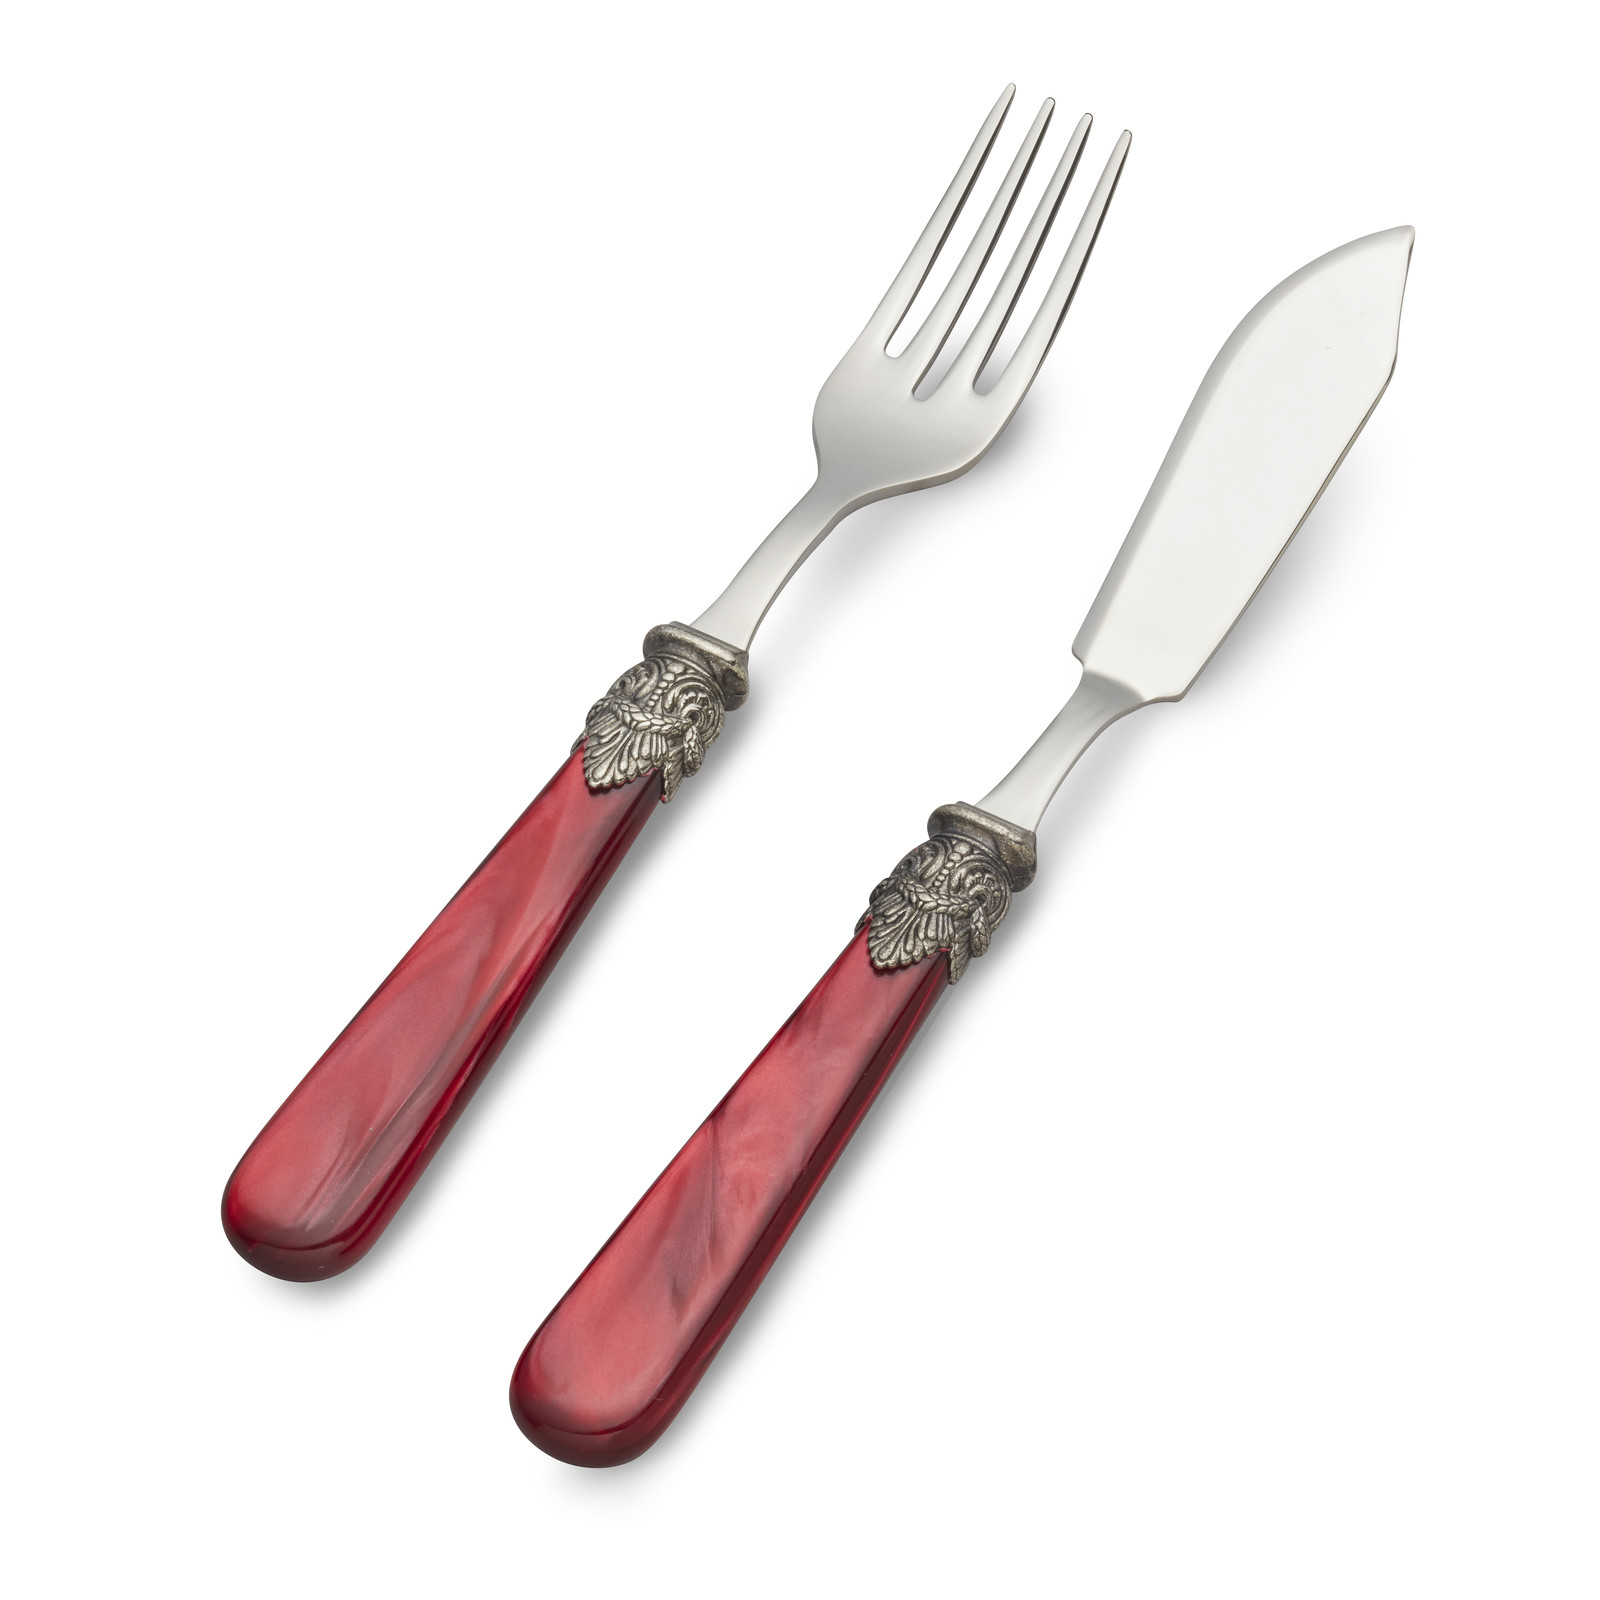 Fish Cutlery Set, 2-piece (fish knife and fish fork), Red with Mother of Pearl, 1 person